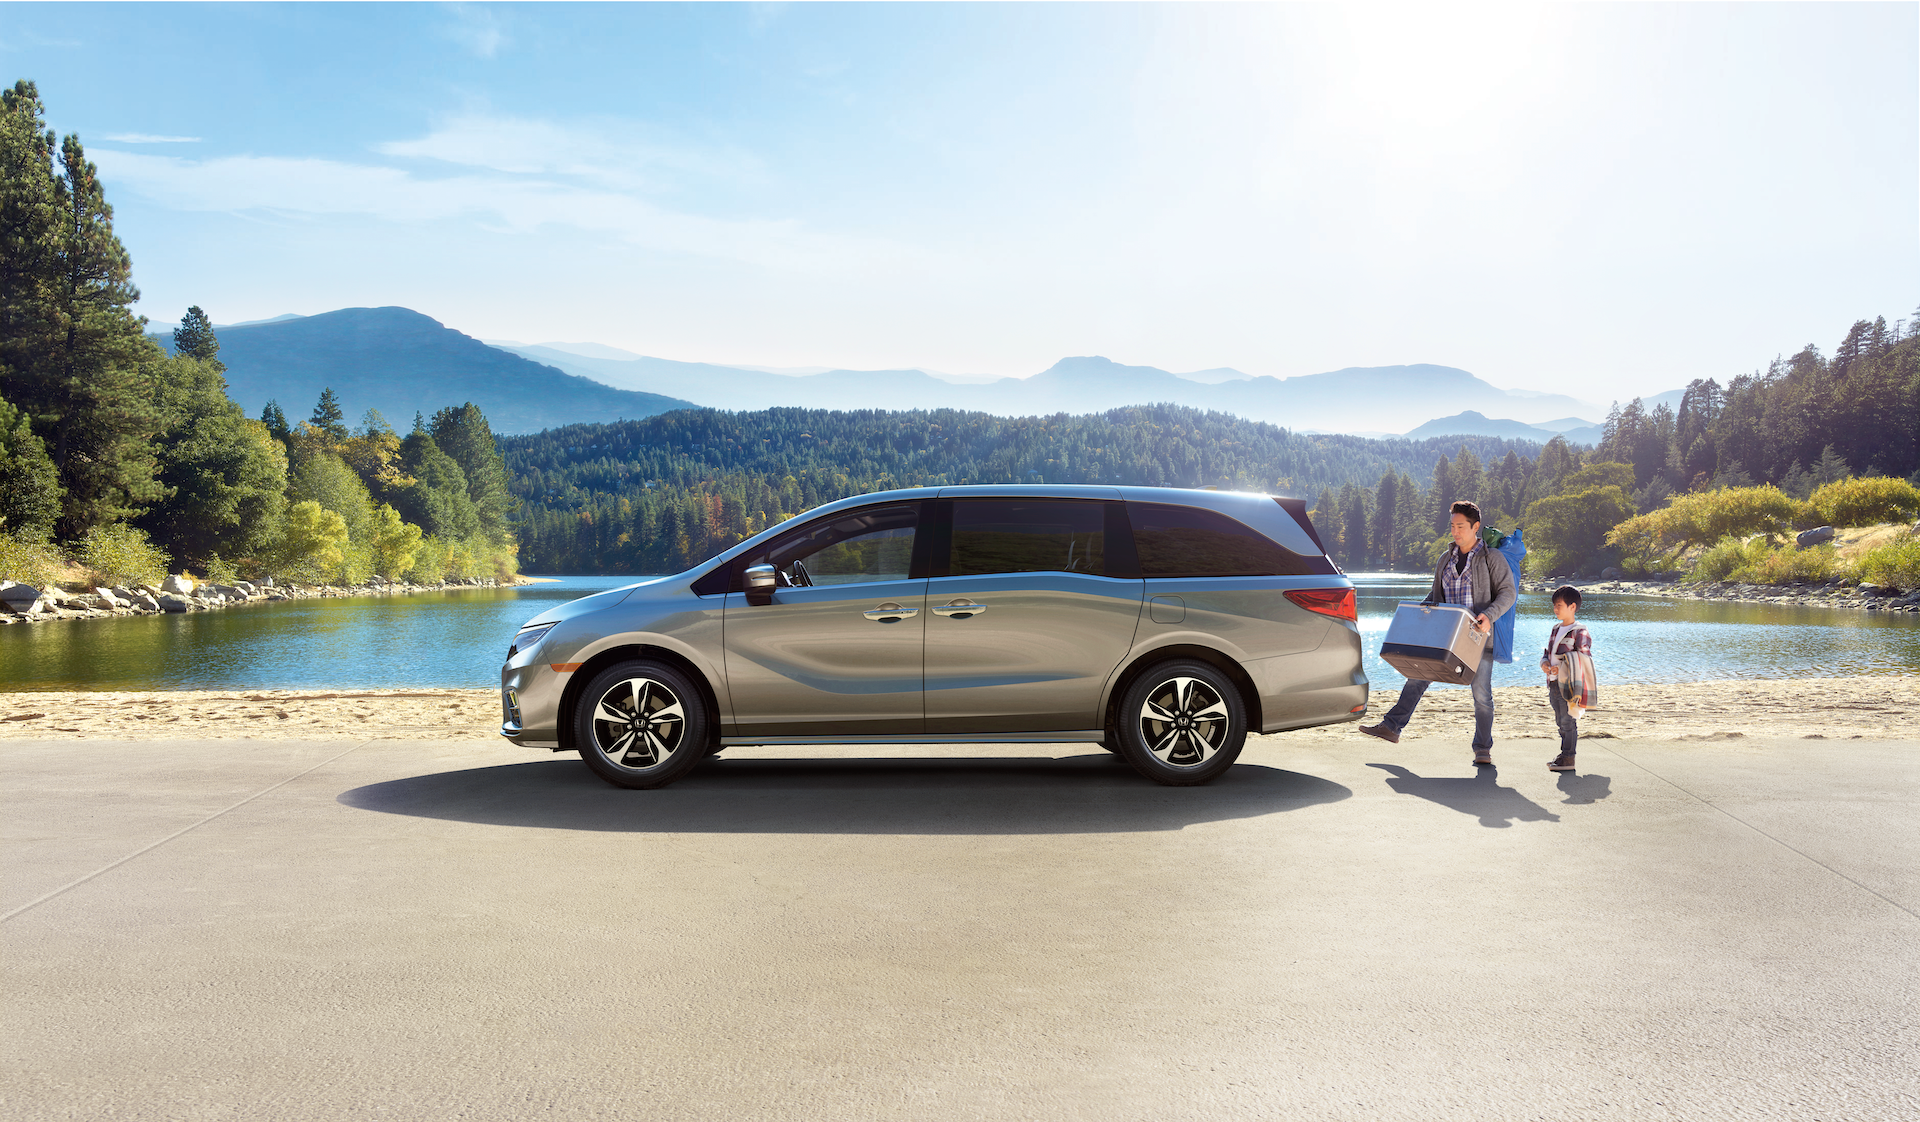 Boch Honda West is a Family Owned Dealership near Groton, MA | Father and child with 2020 Honda Odyssey by lake